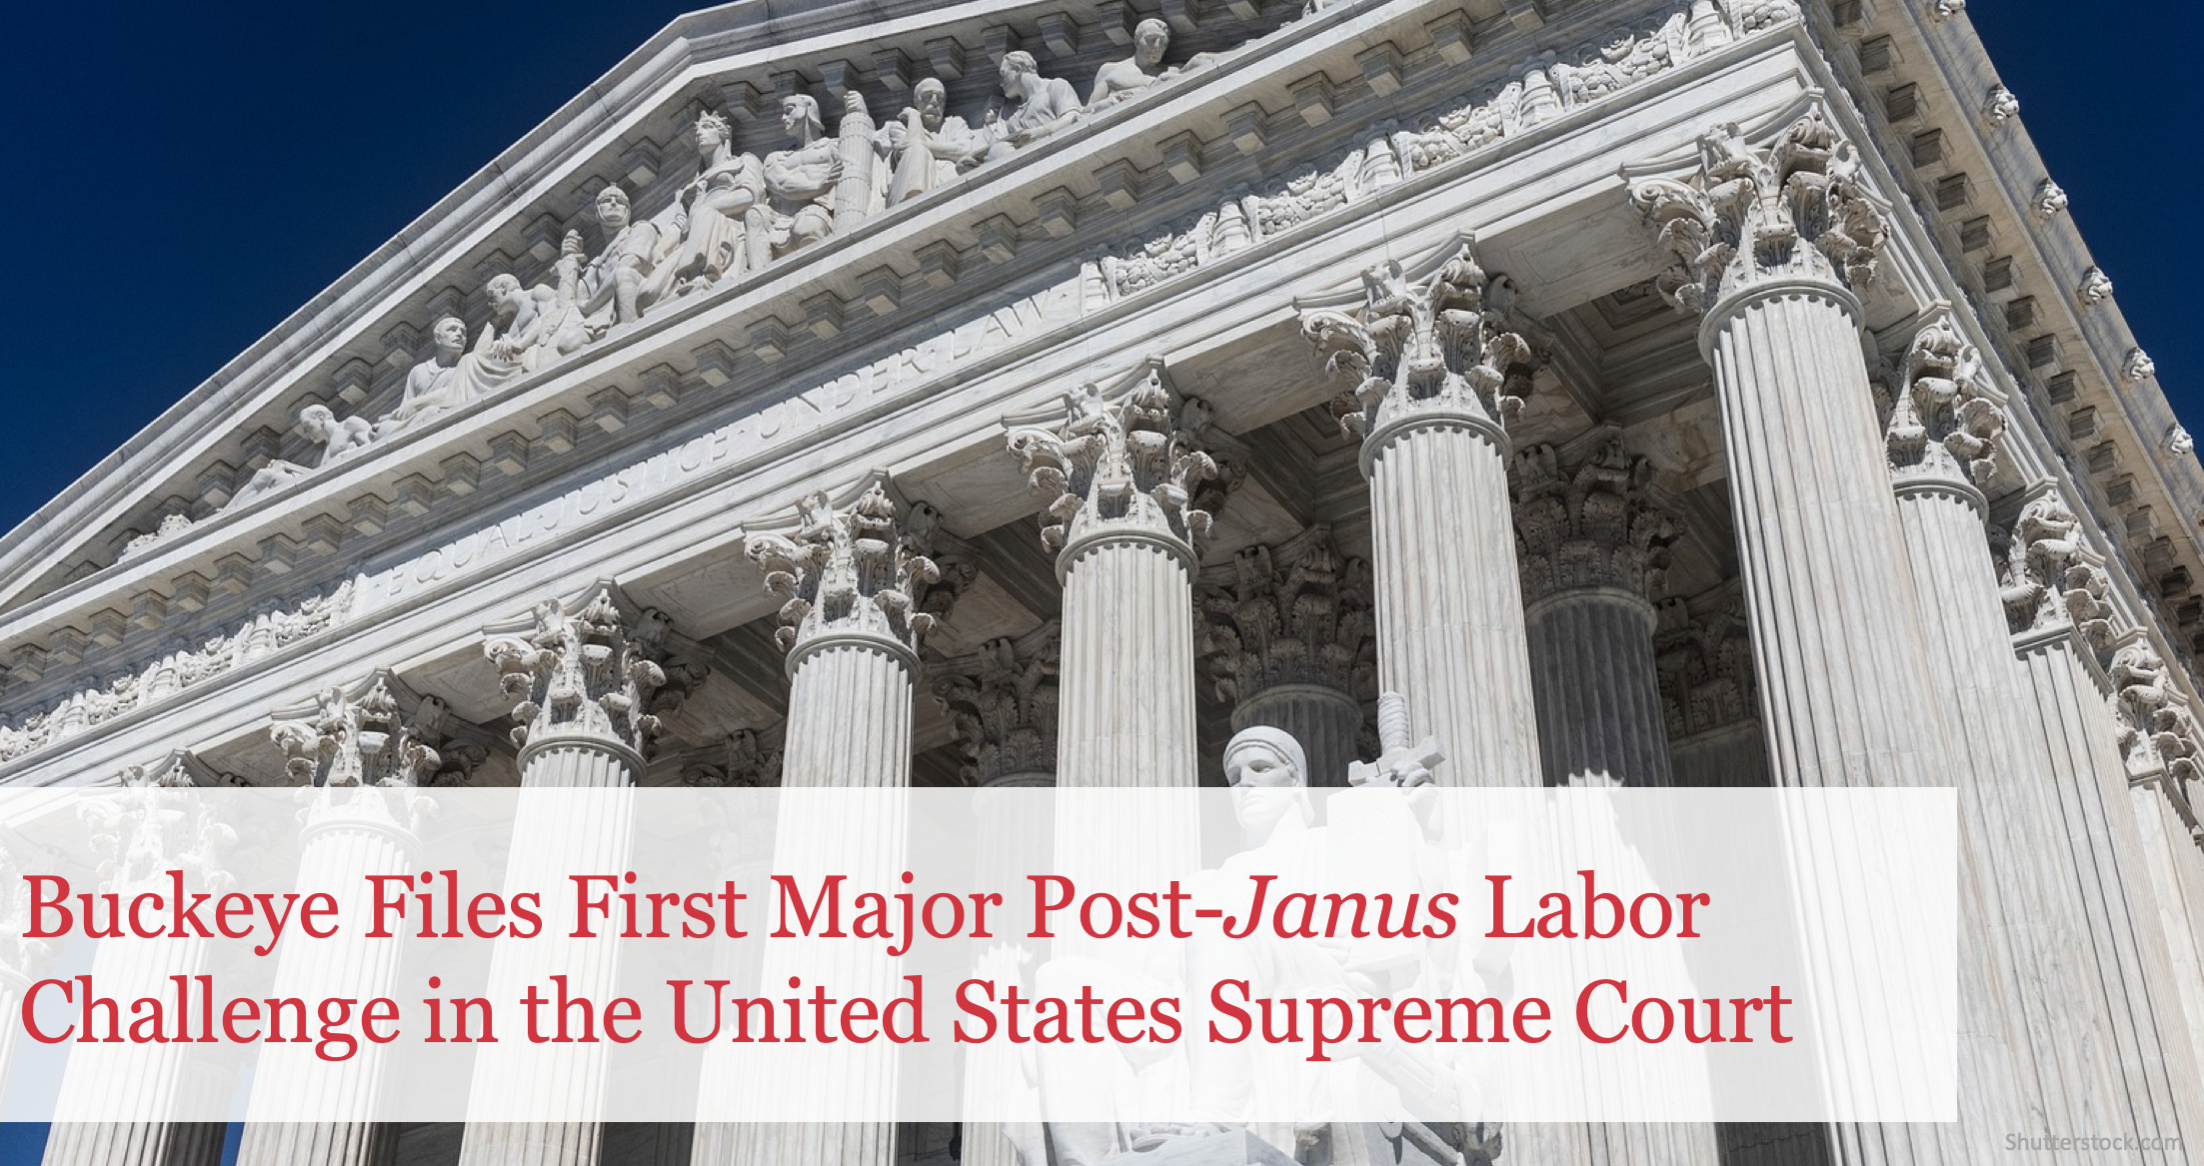 The Buckeye Institute Files First Major Post-Janus Labor Challenge in the United States Supreme Court